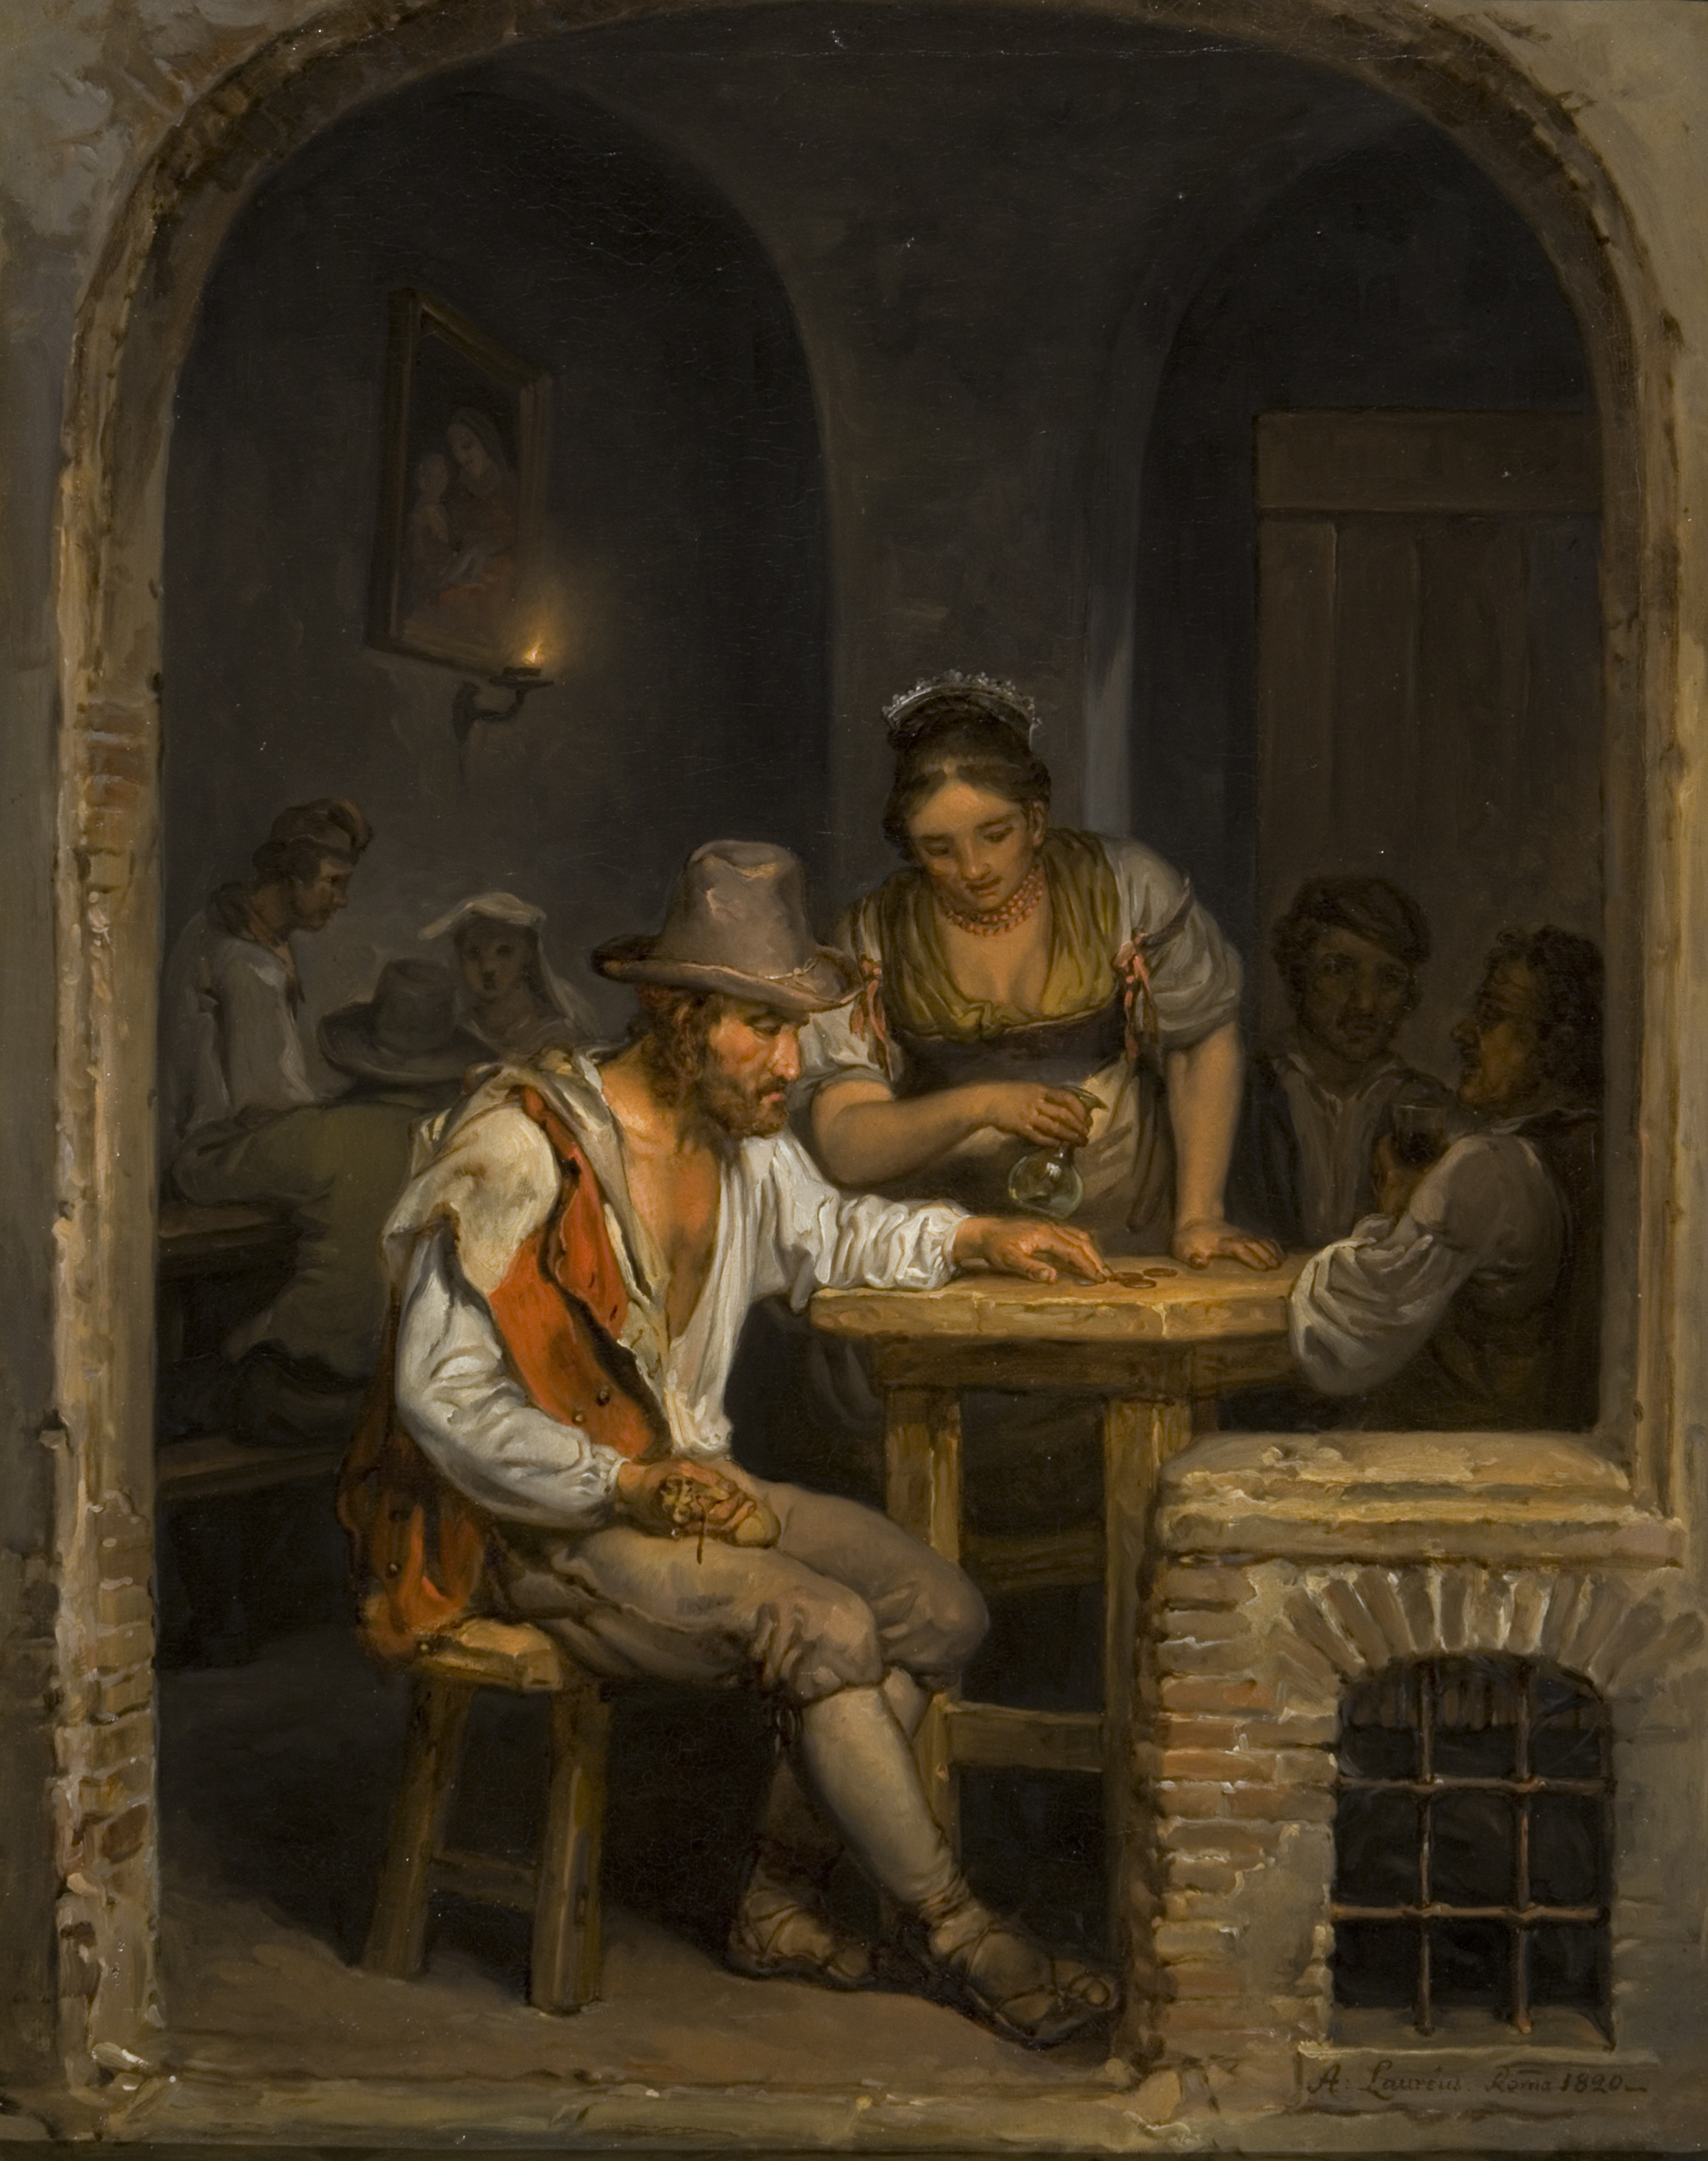 File:Painting by Alexander Laureus called Roman Osteria, 1820.jpg